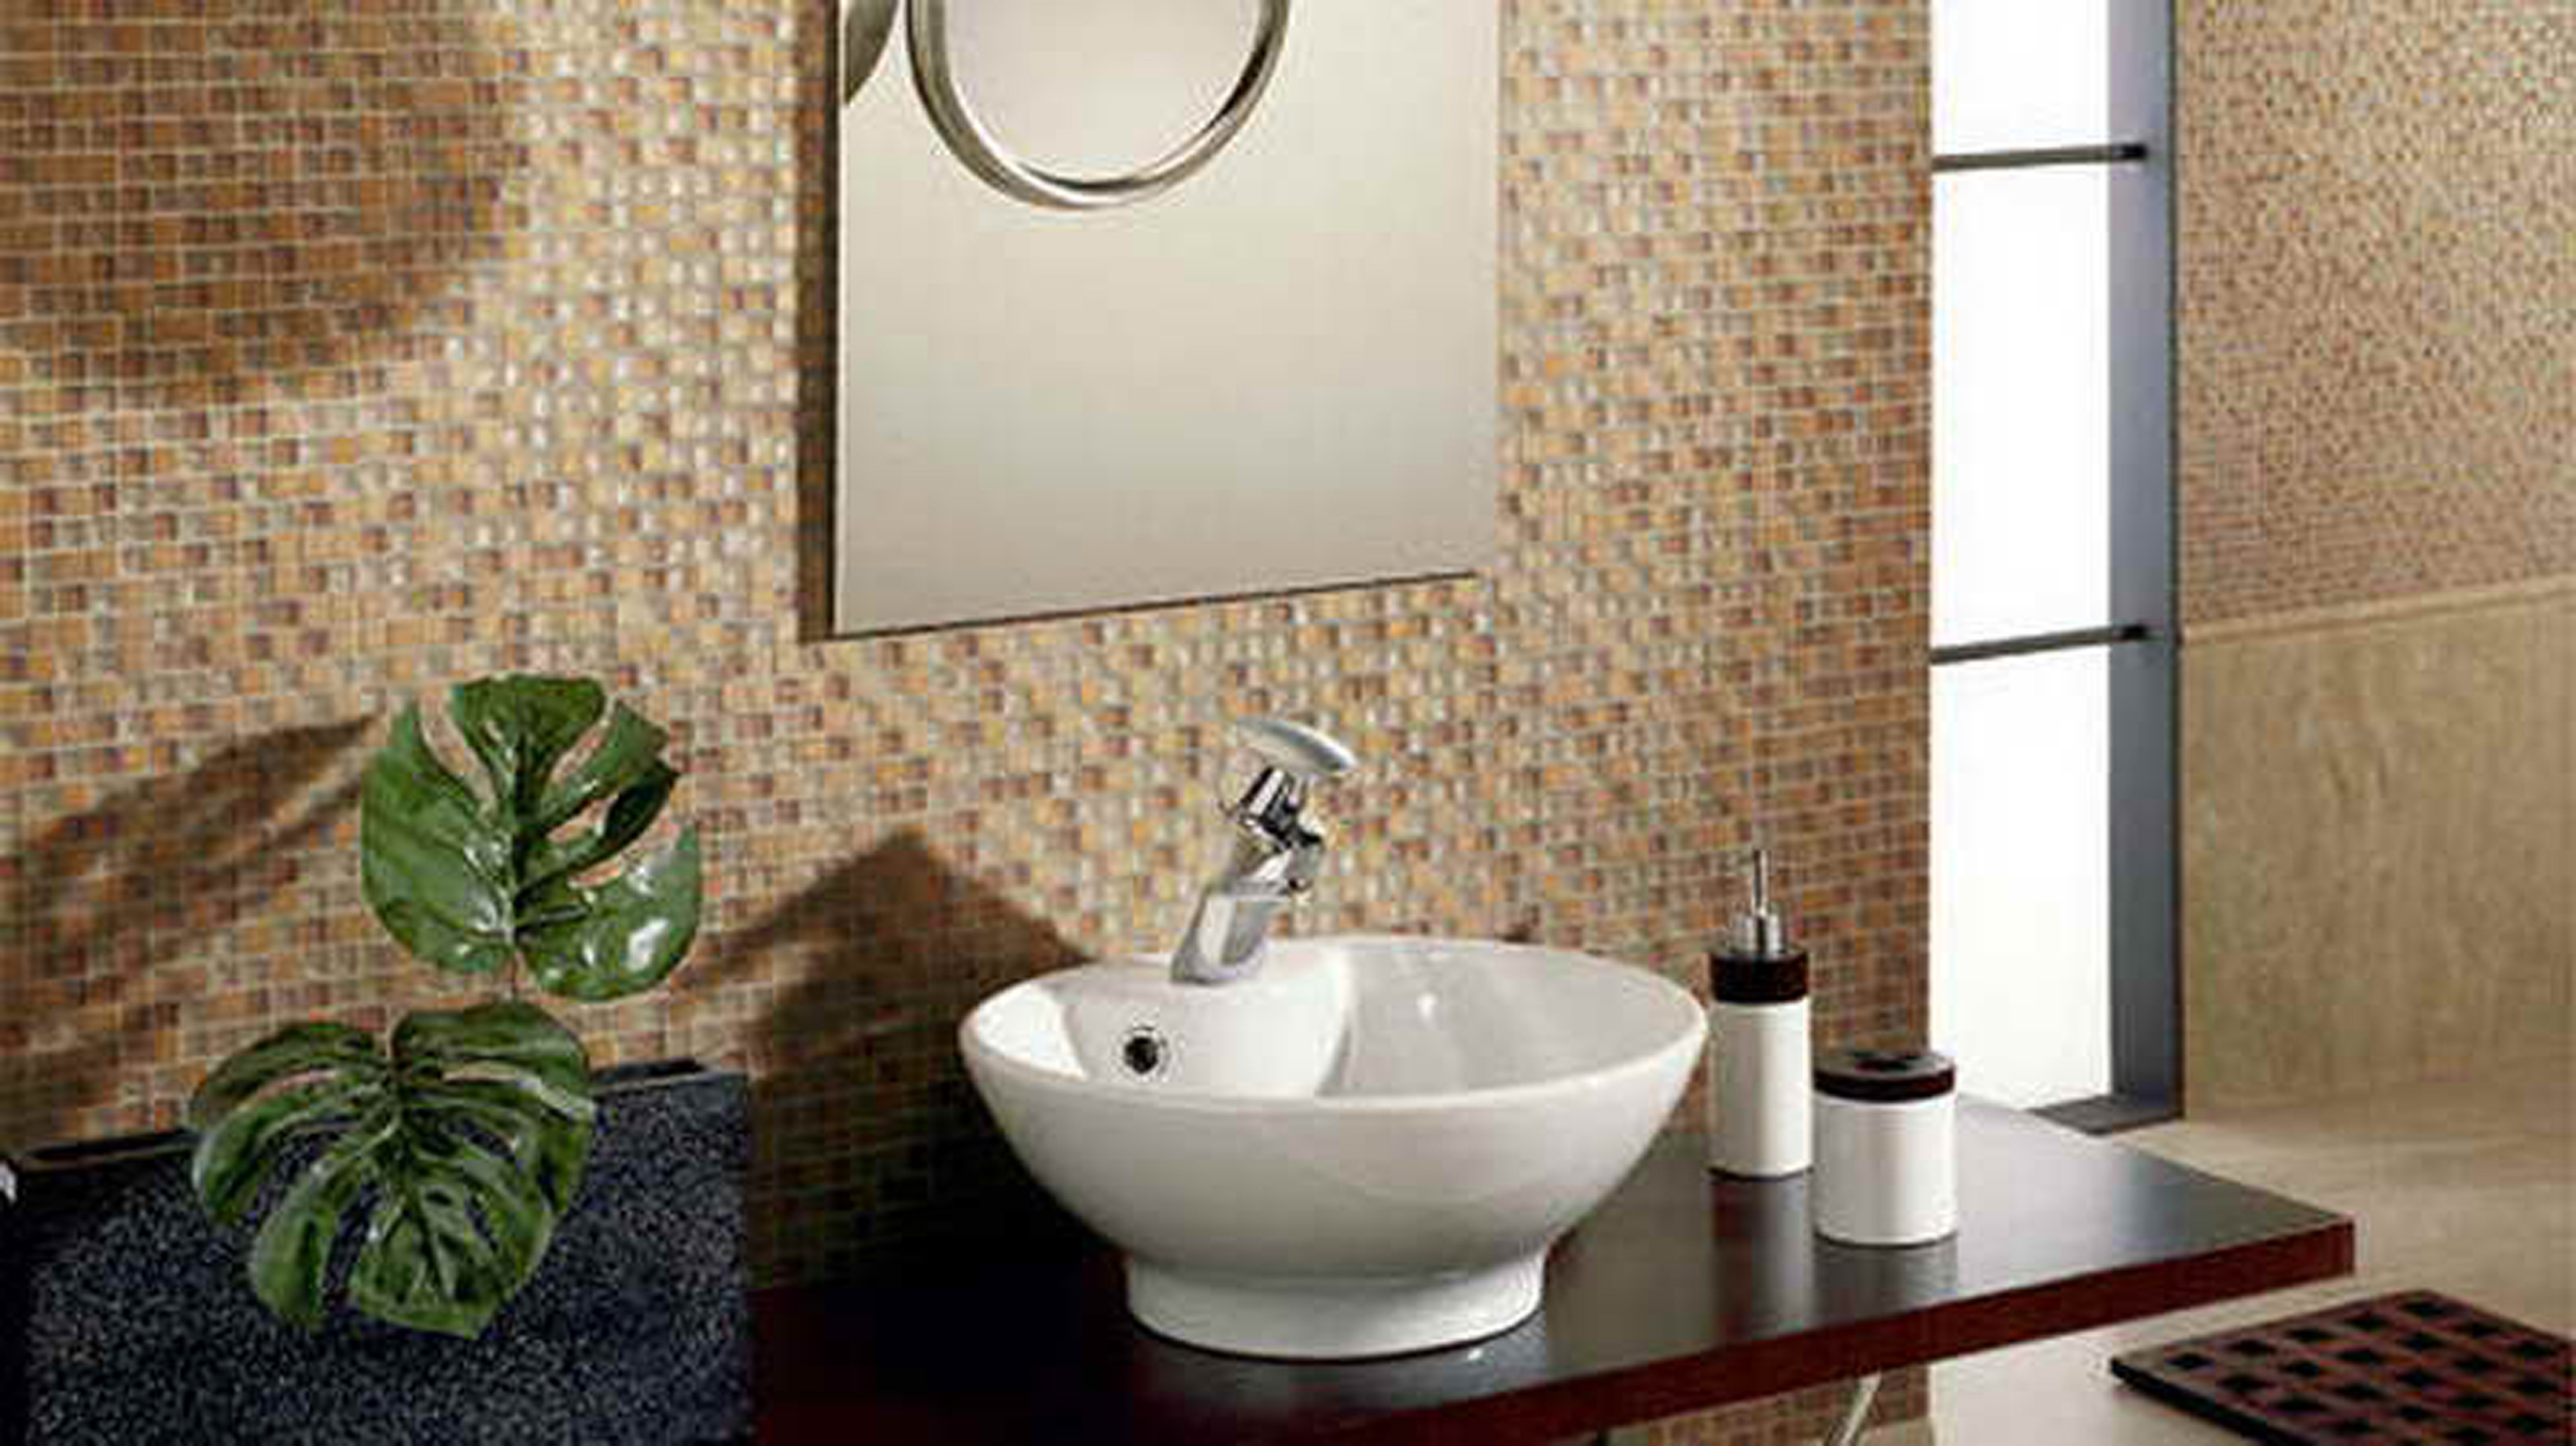 Bathroom flooring options to create fresh nuance custom home design - Small half bathroom tile ideas ...